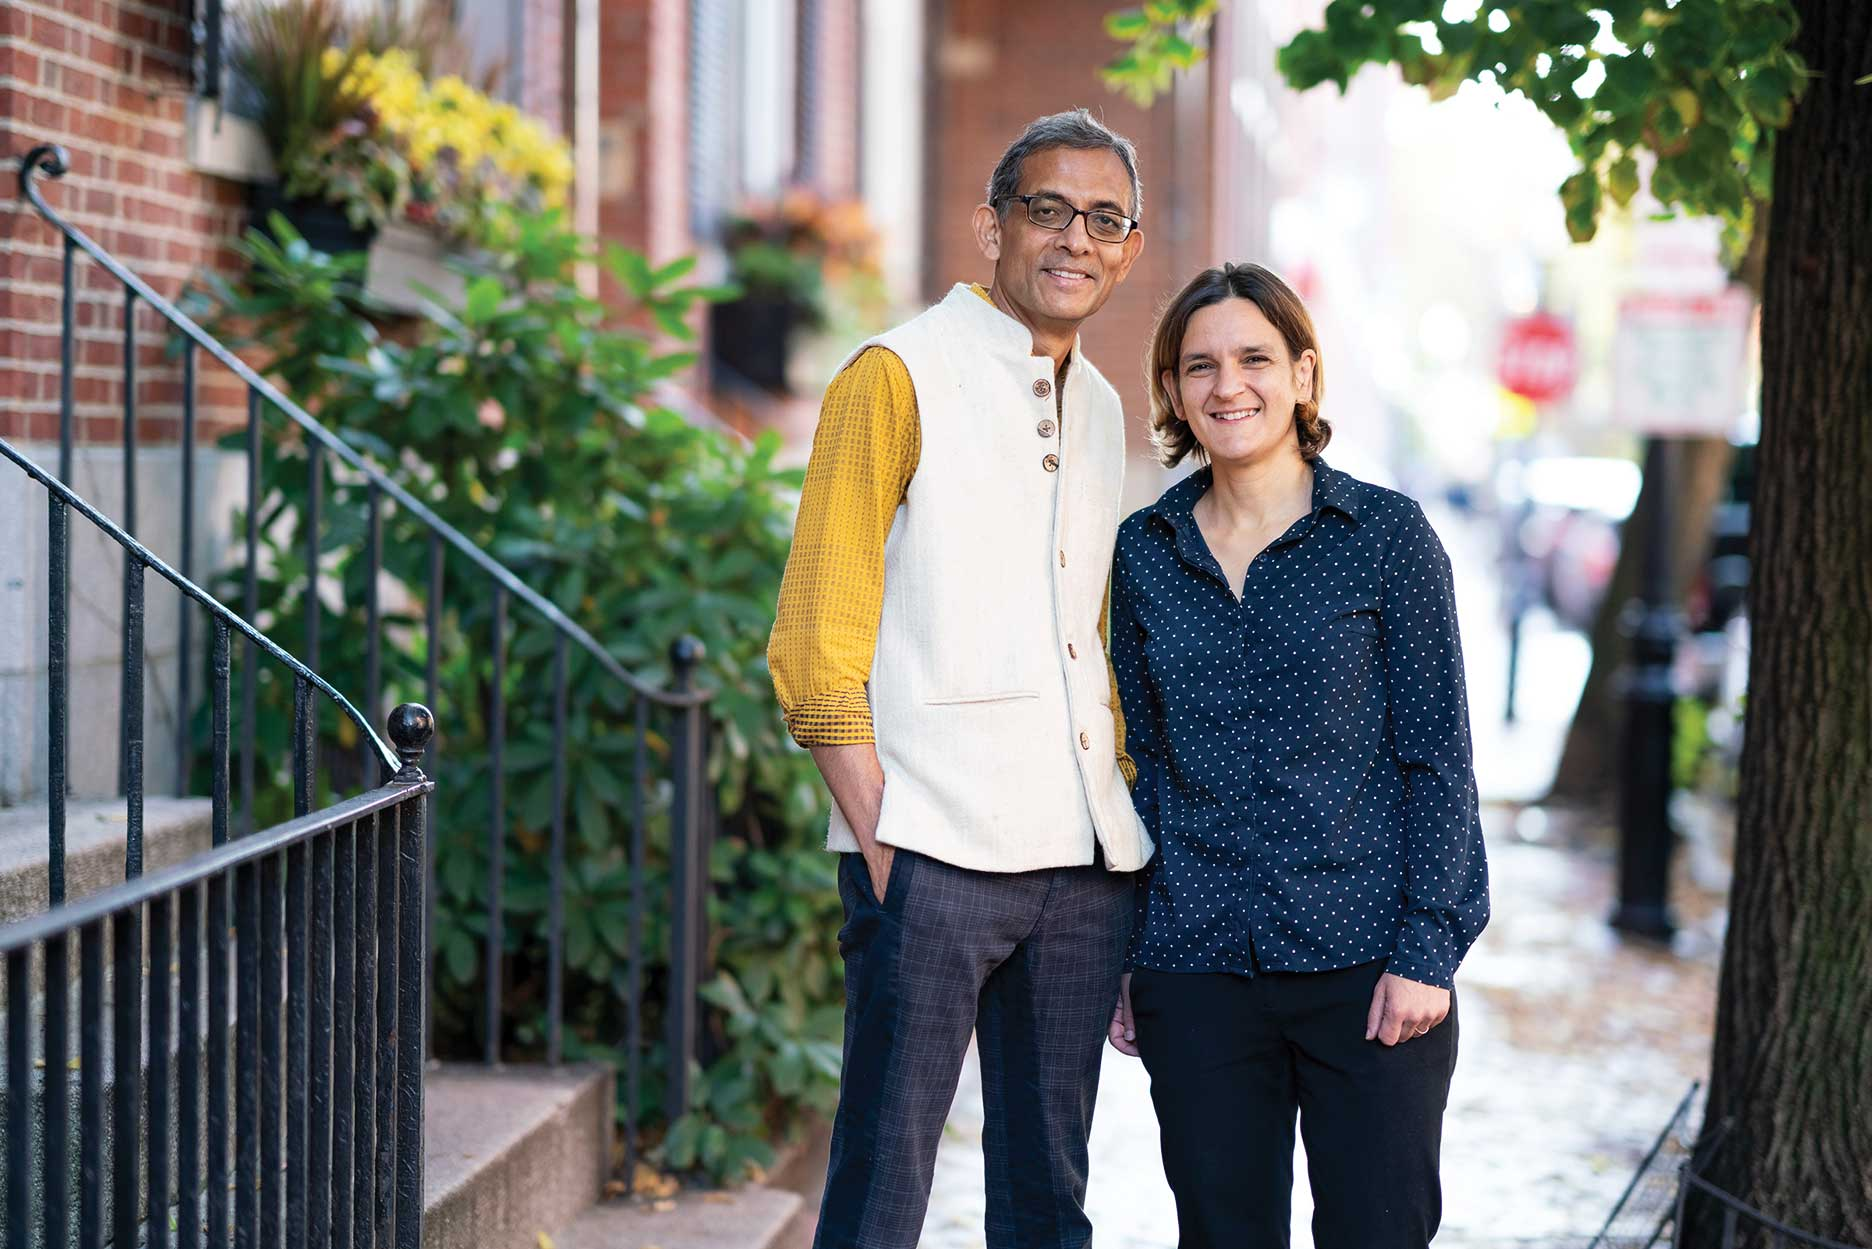 Photograph of Esther Duflo, PhD and Abhijit Banerjee